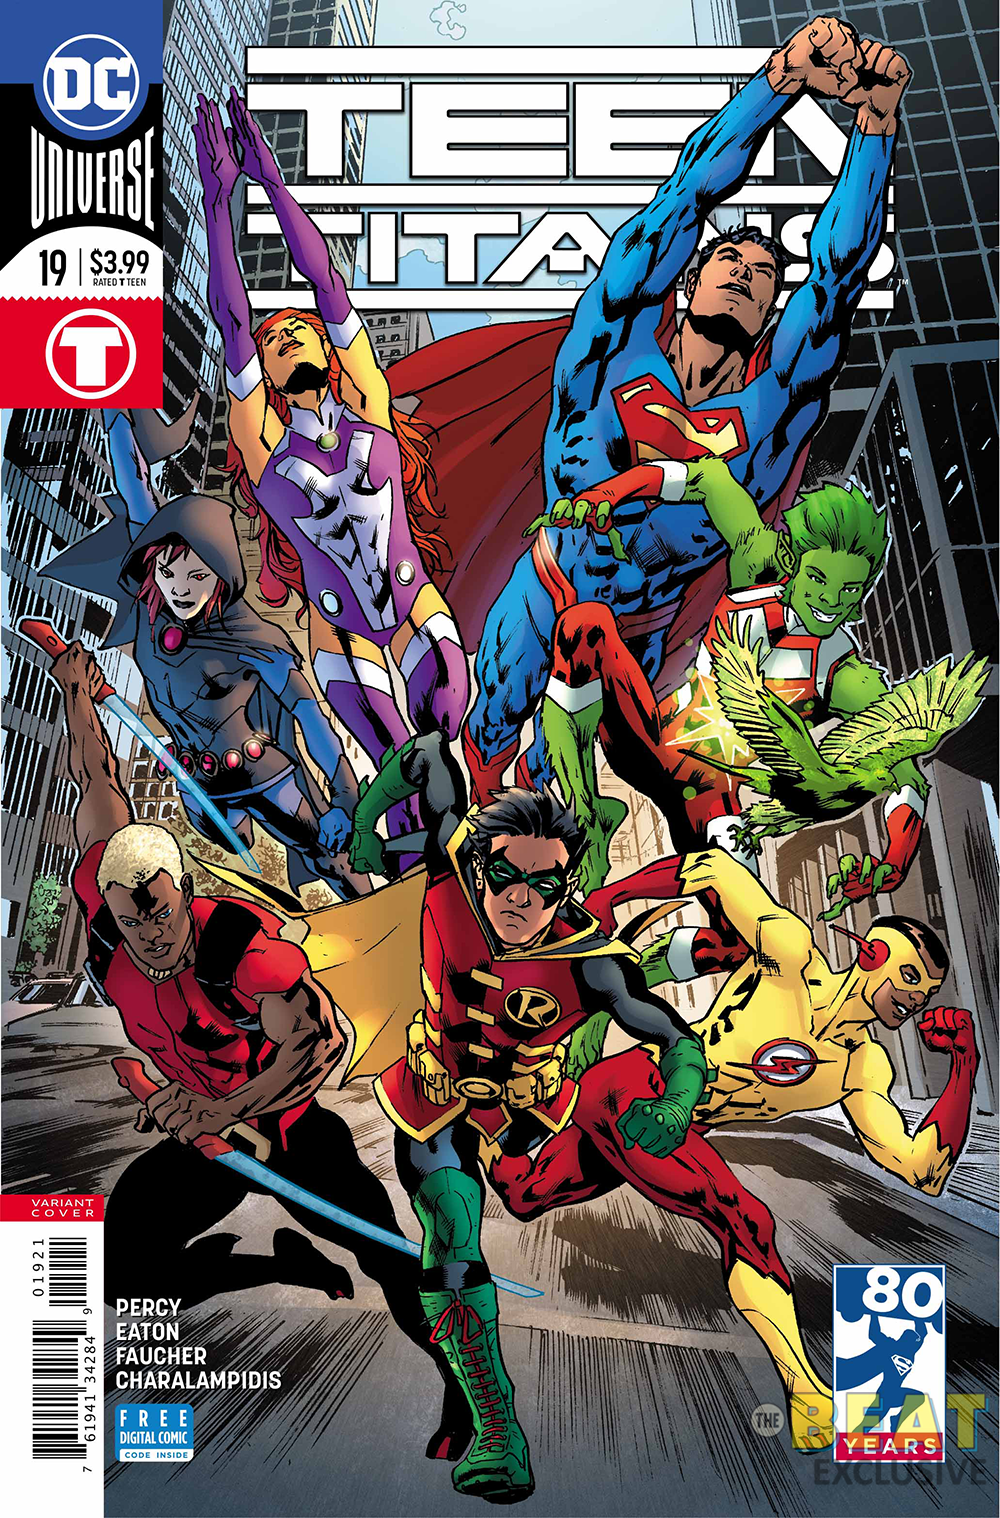 Comic free teen titans